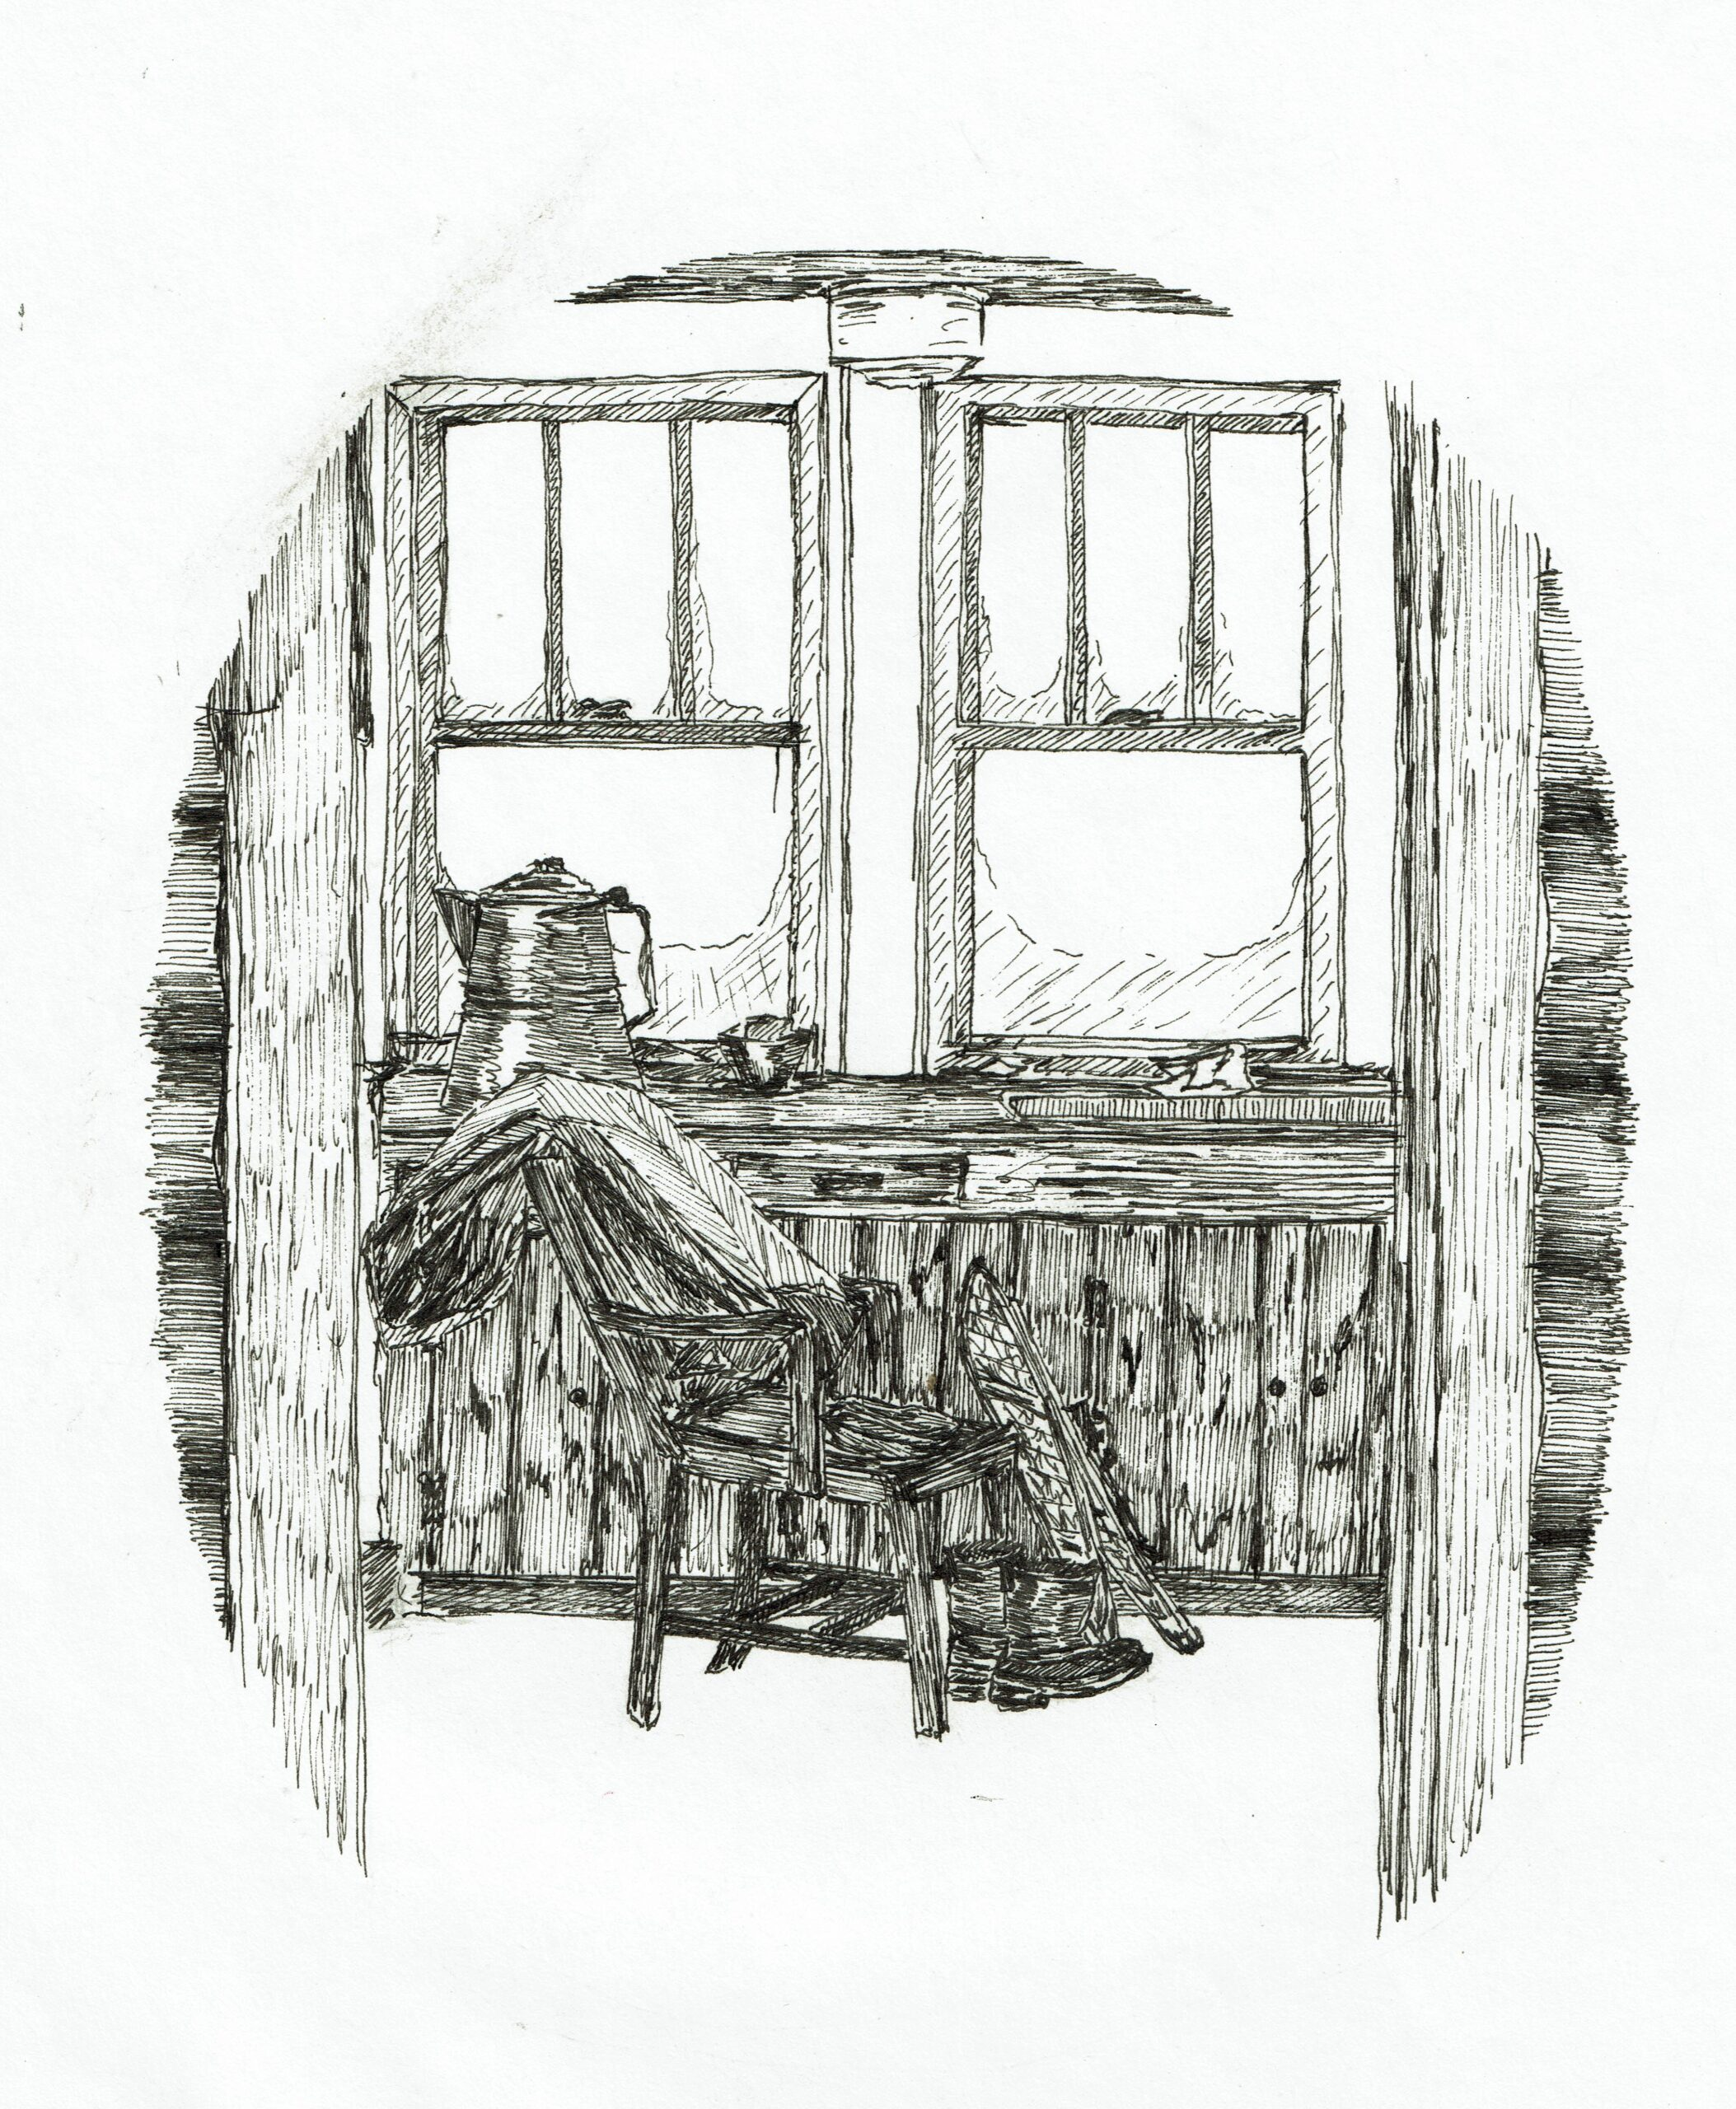 Buyck log cabin, ink drawing, snow shoes and chair